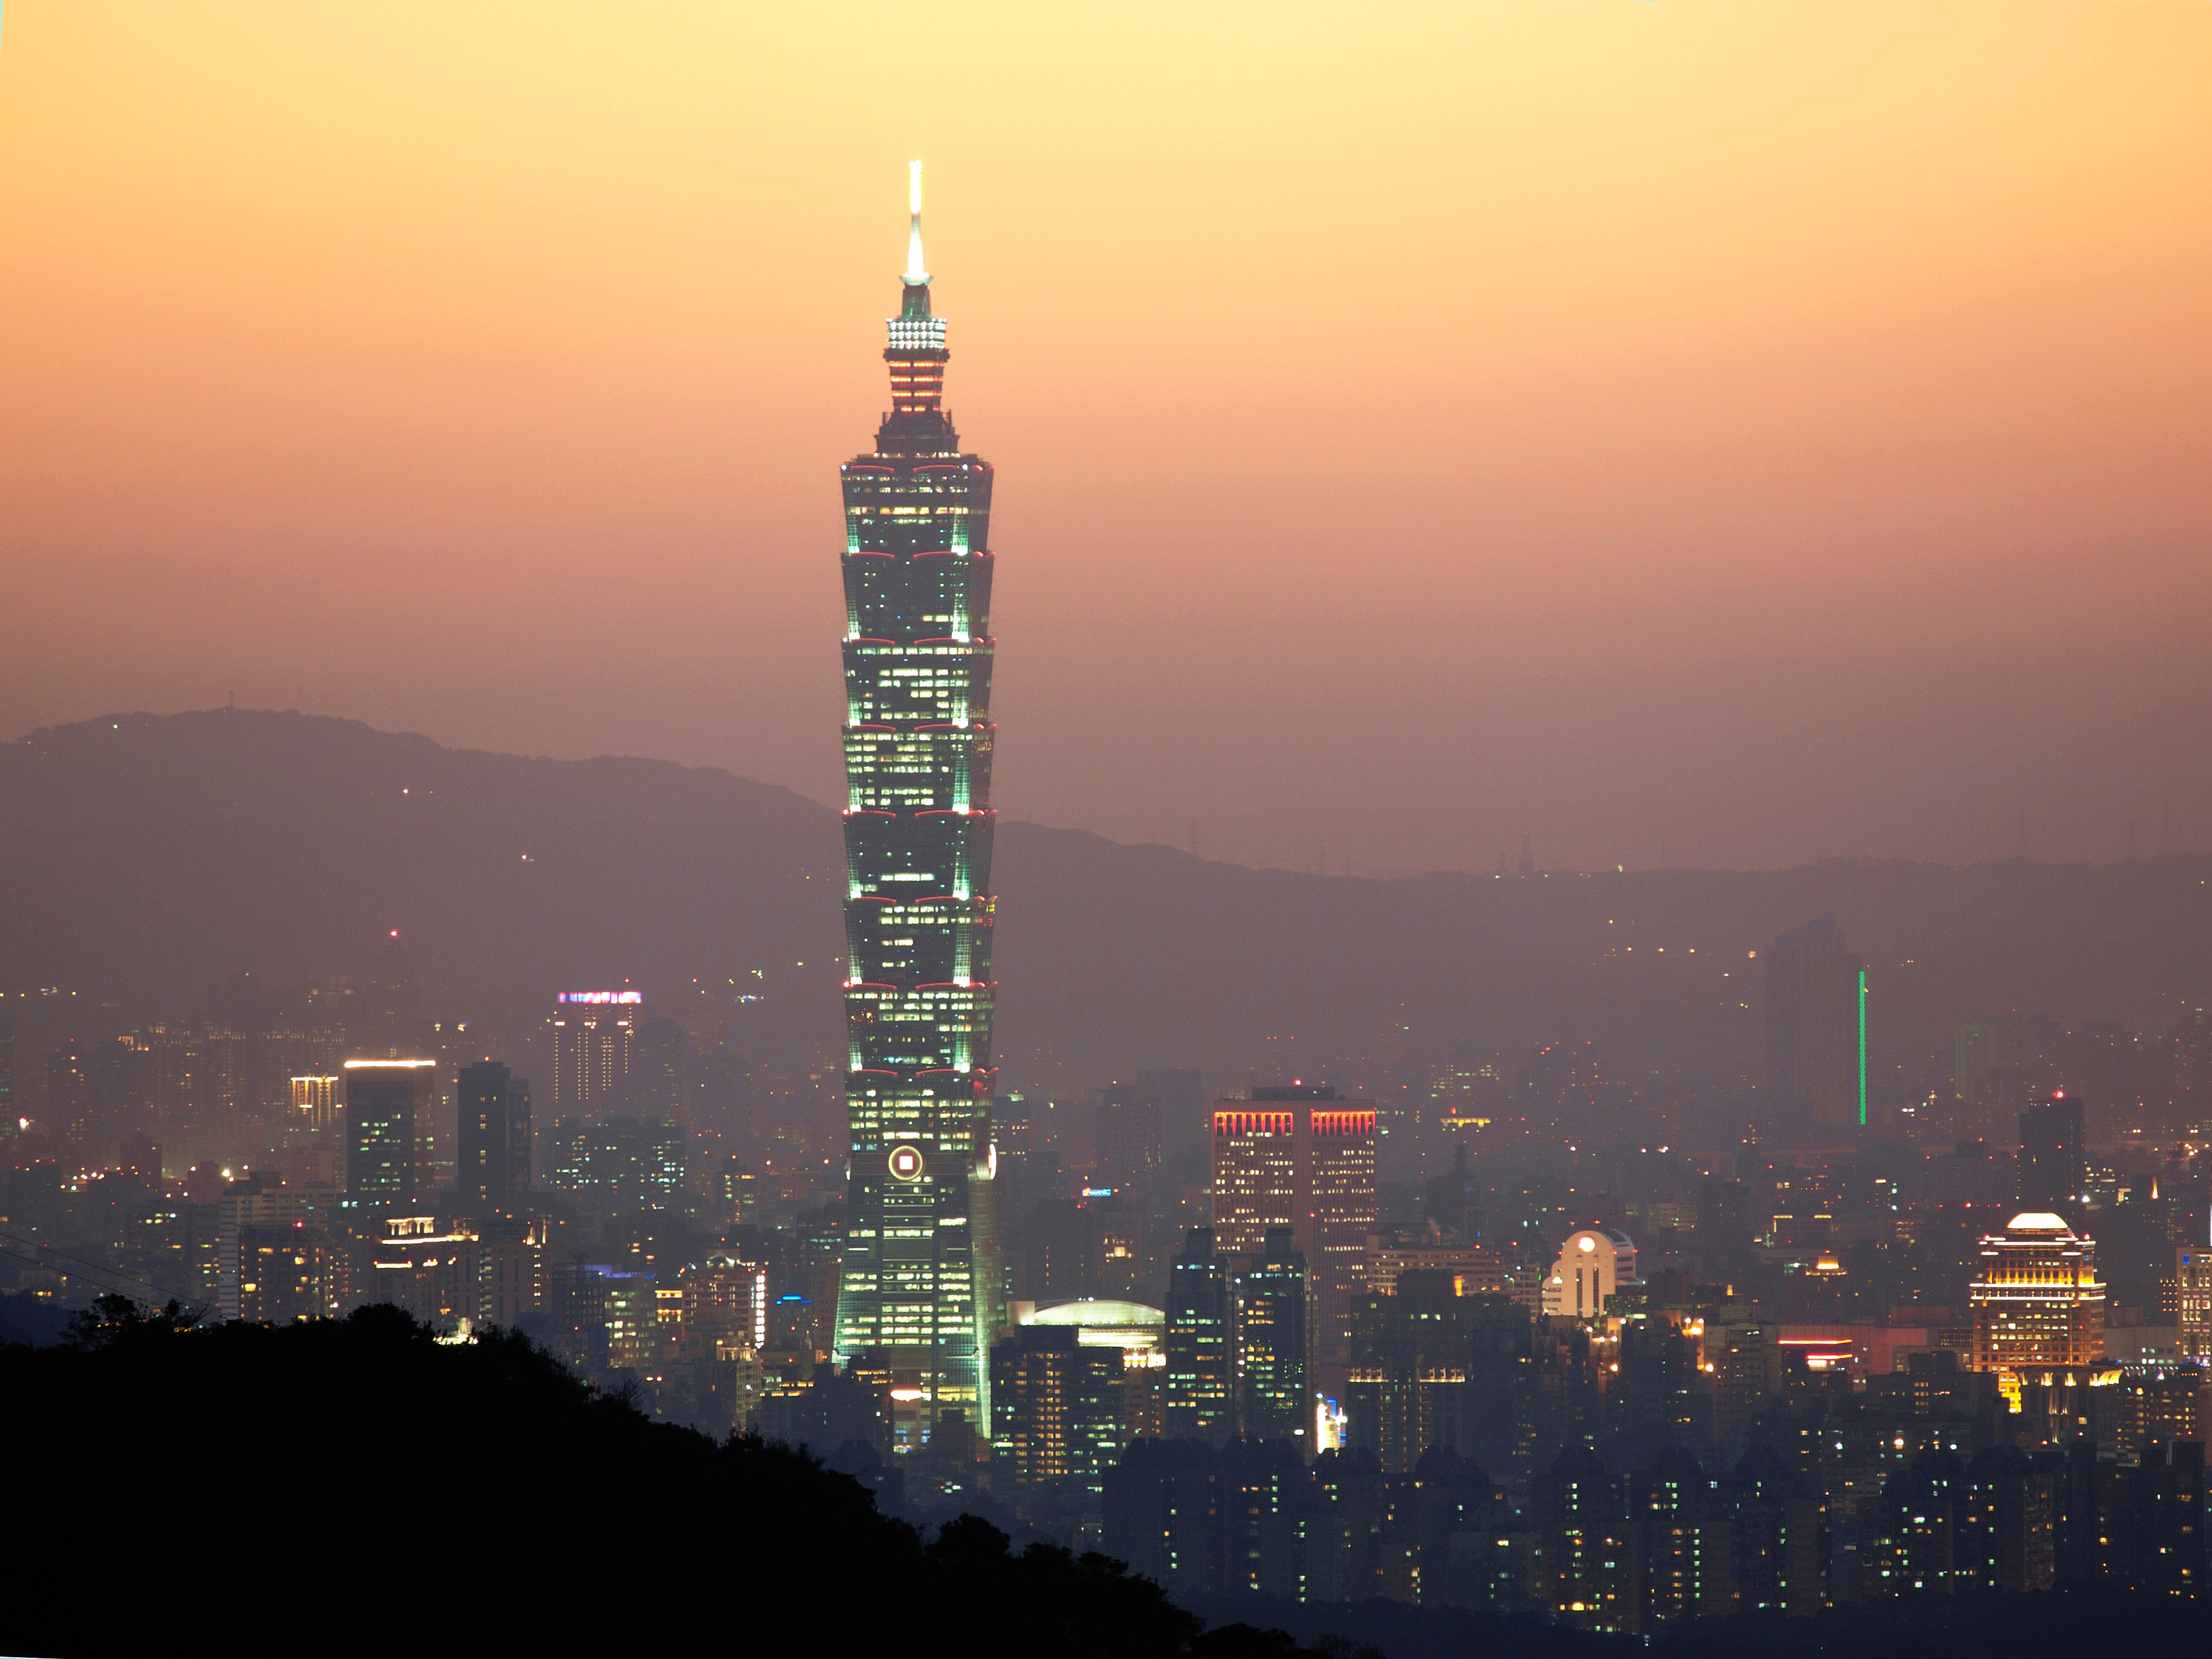 Taipei 101 with lights at dusk in Taiwan image - Free